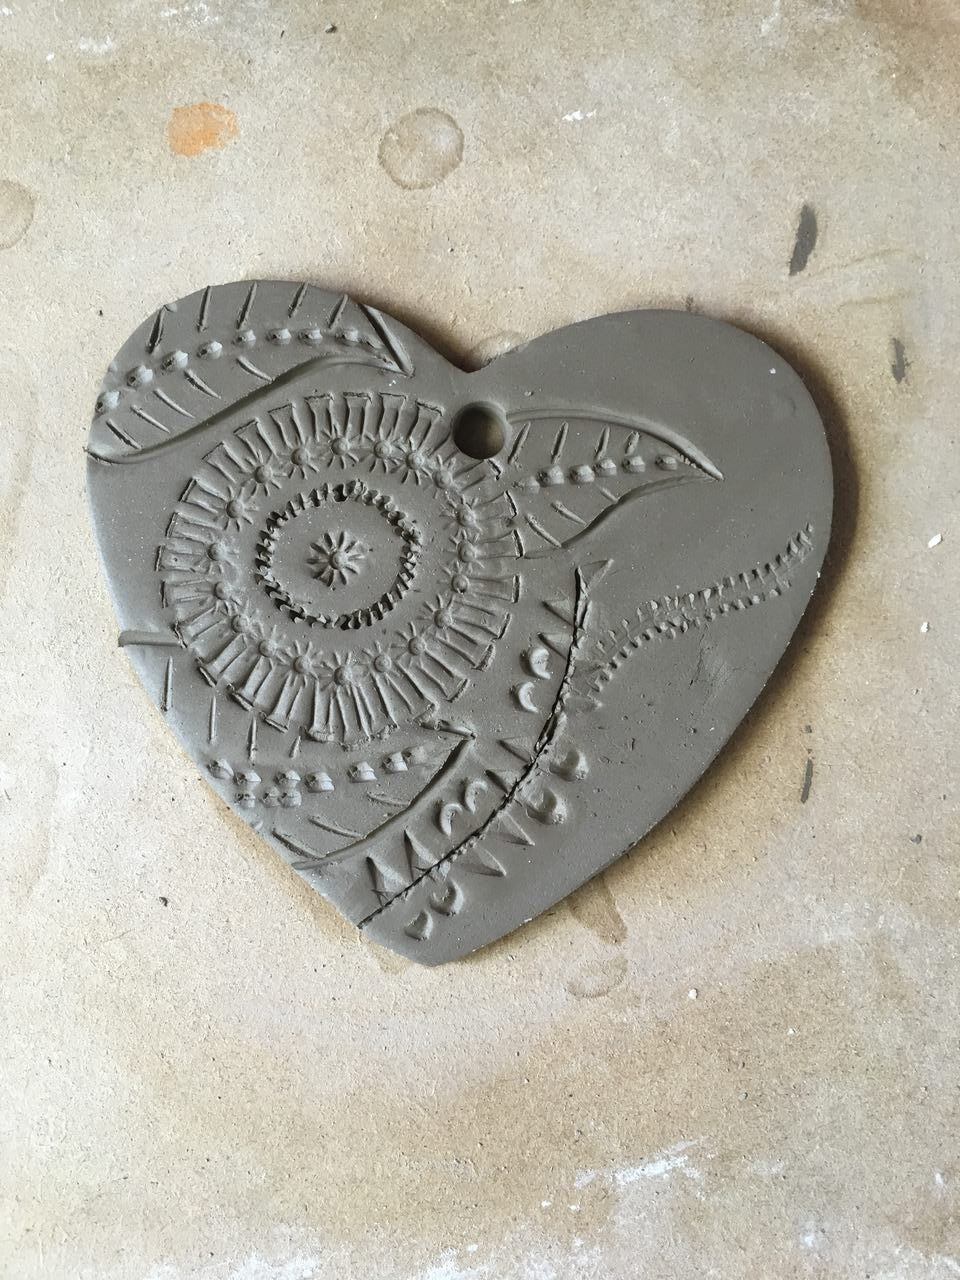 Decorating a Pottery Heart in progress